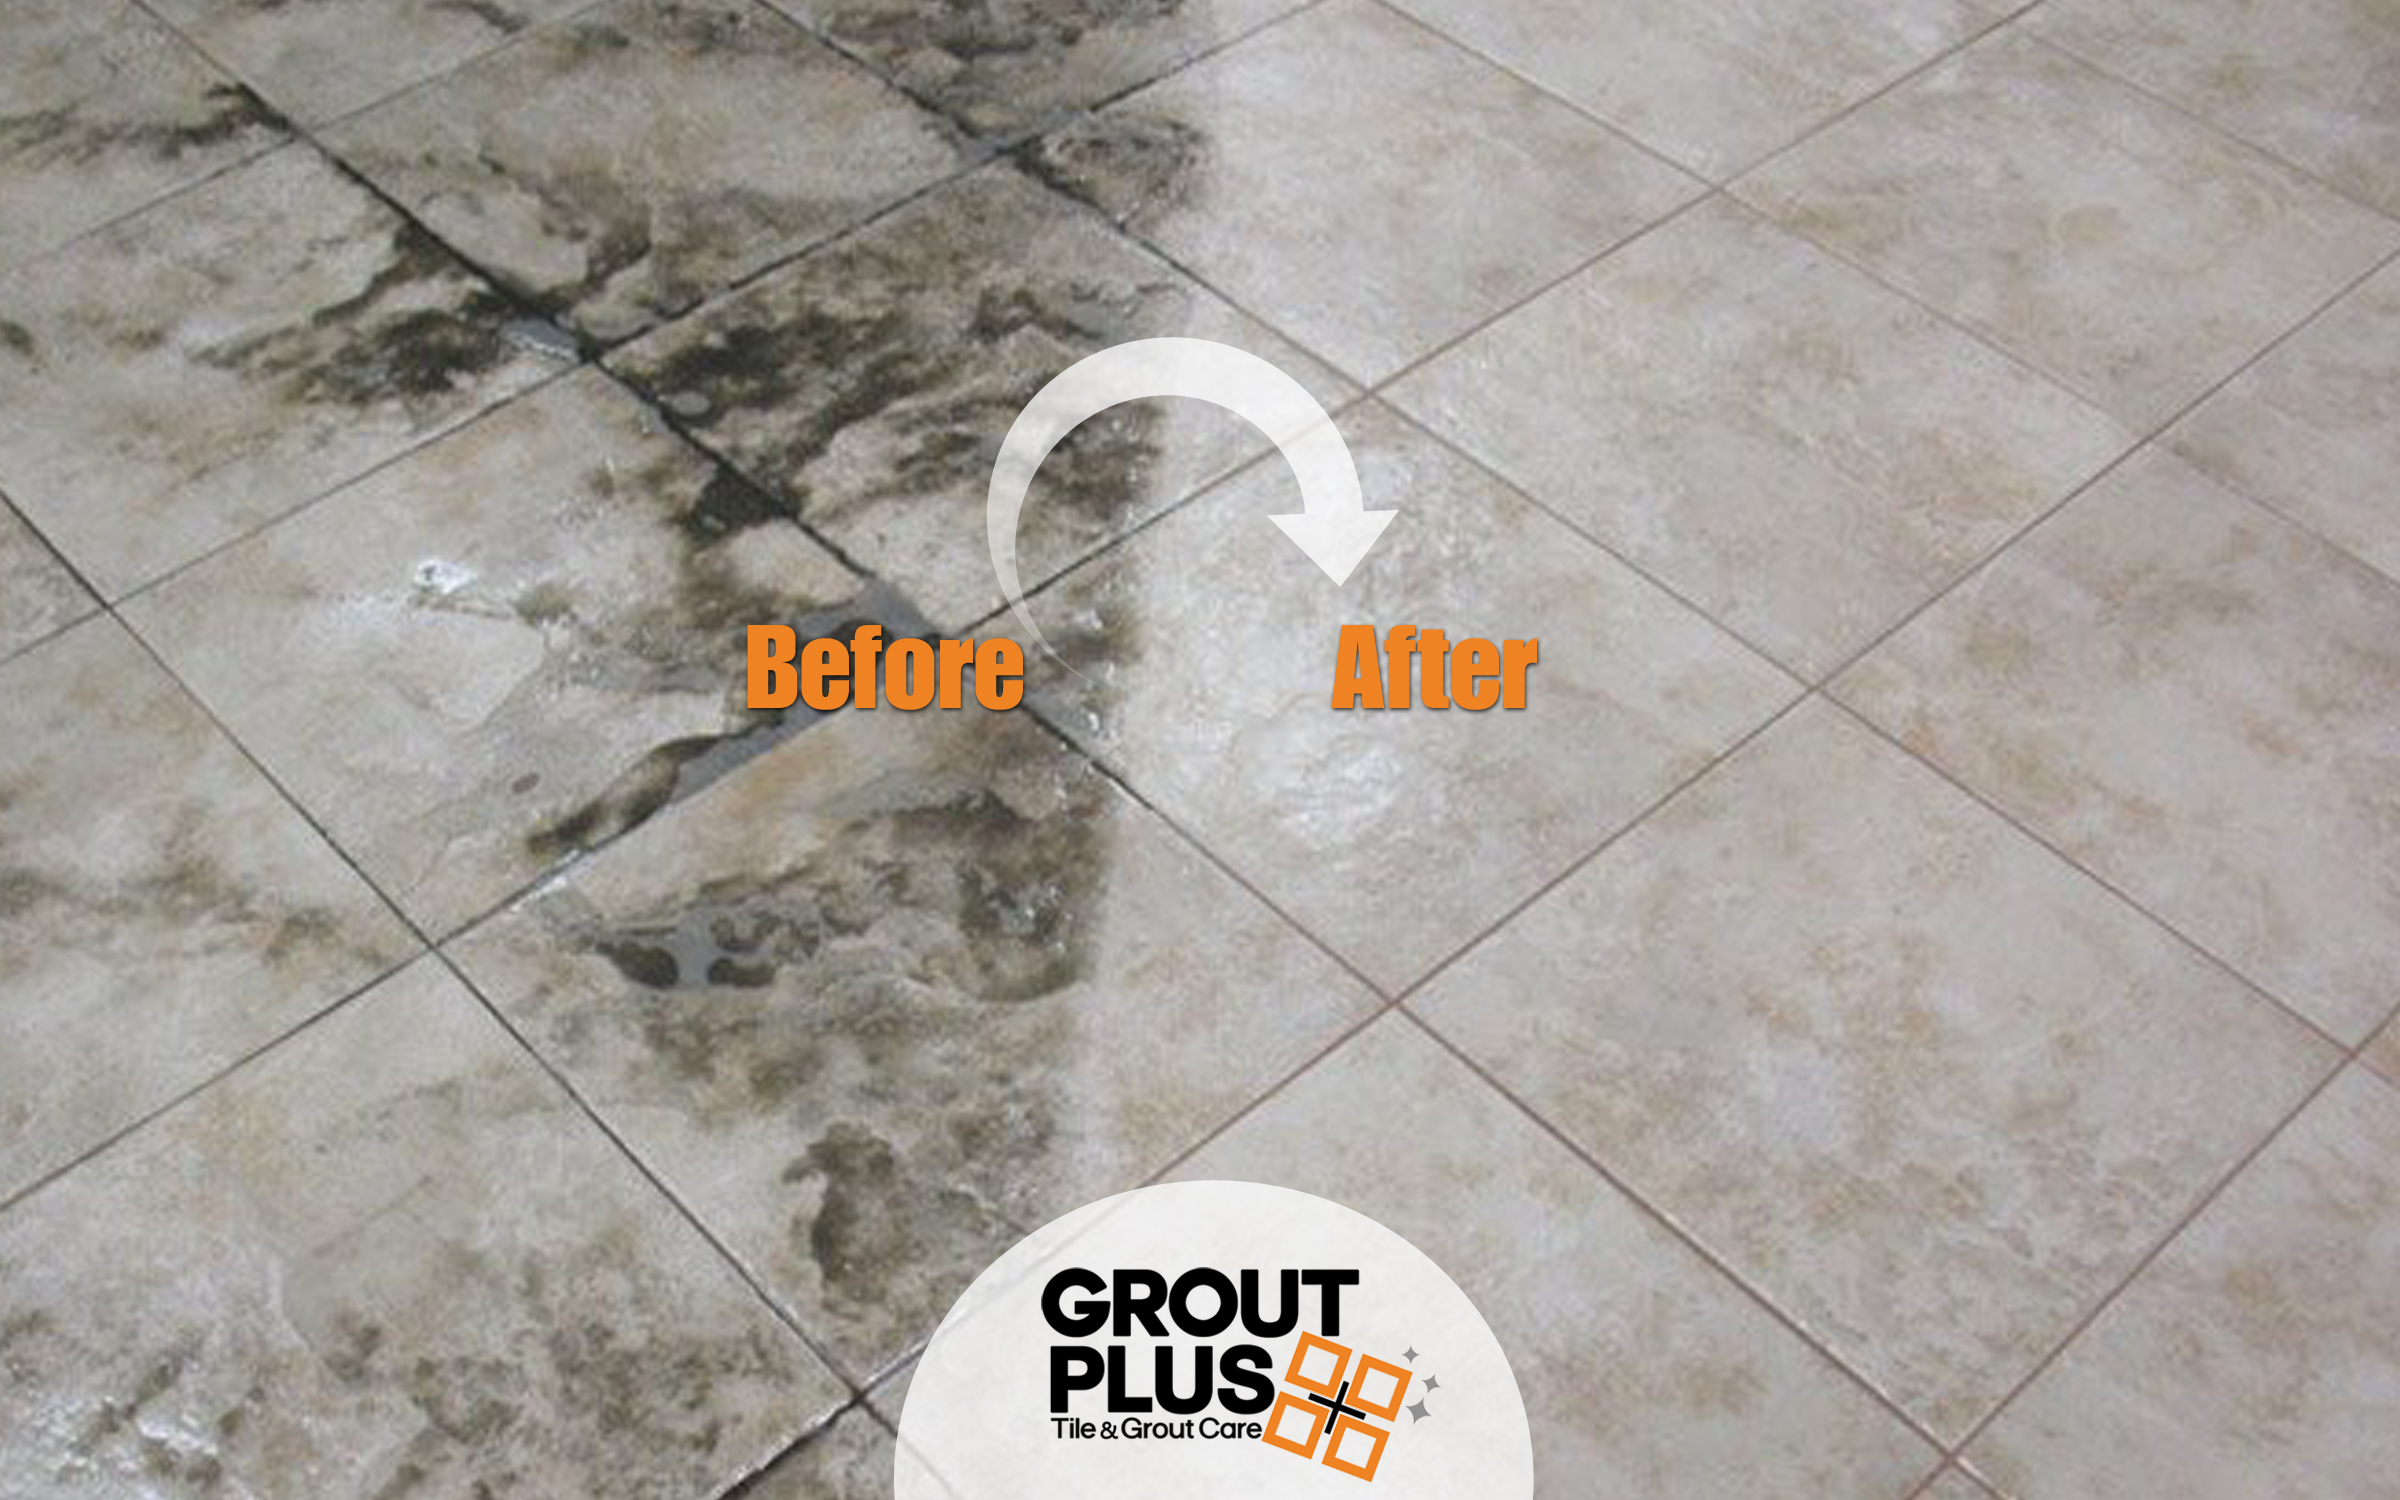 Grout Plus Before After Tile Grout7.jpg